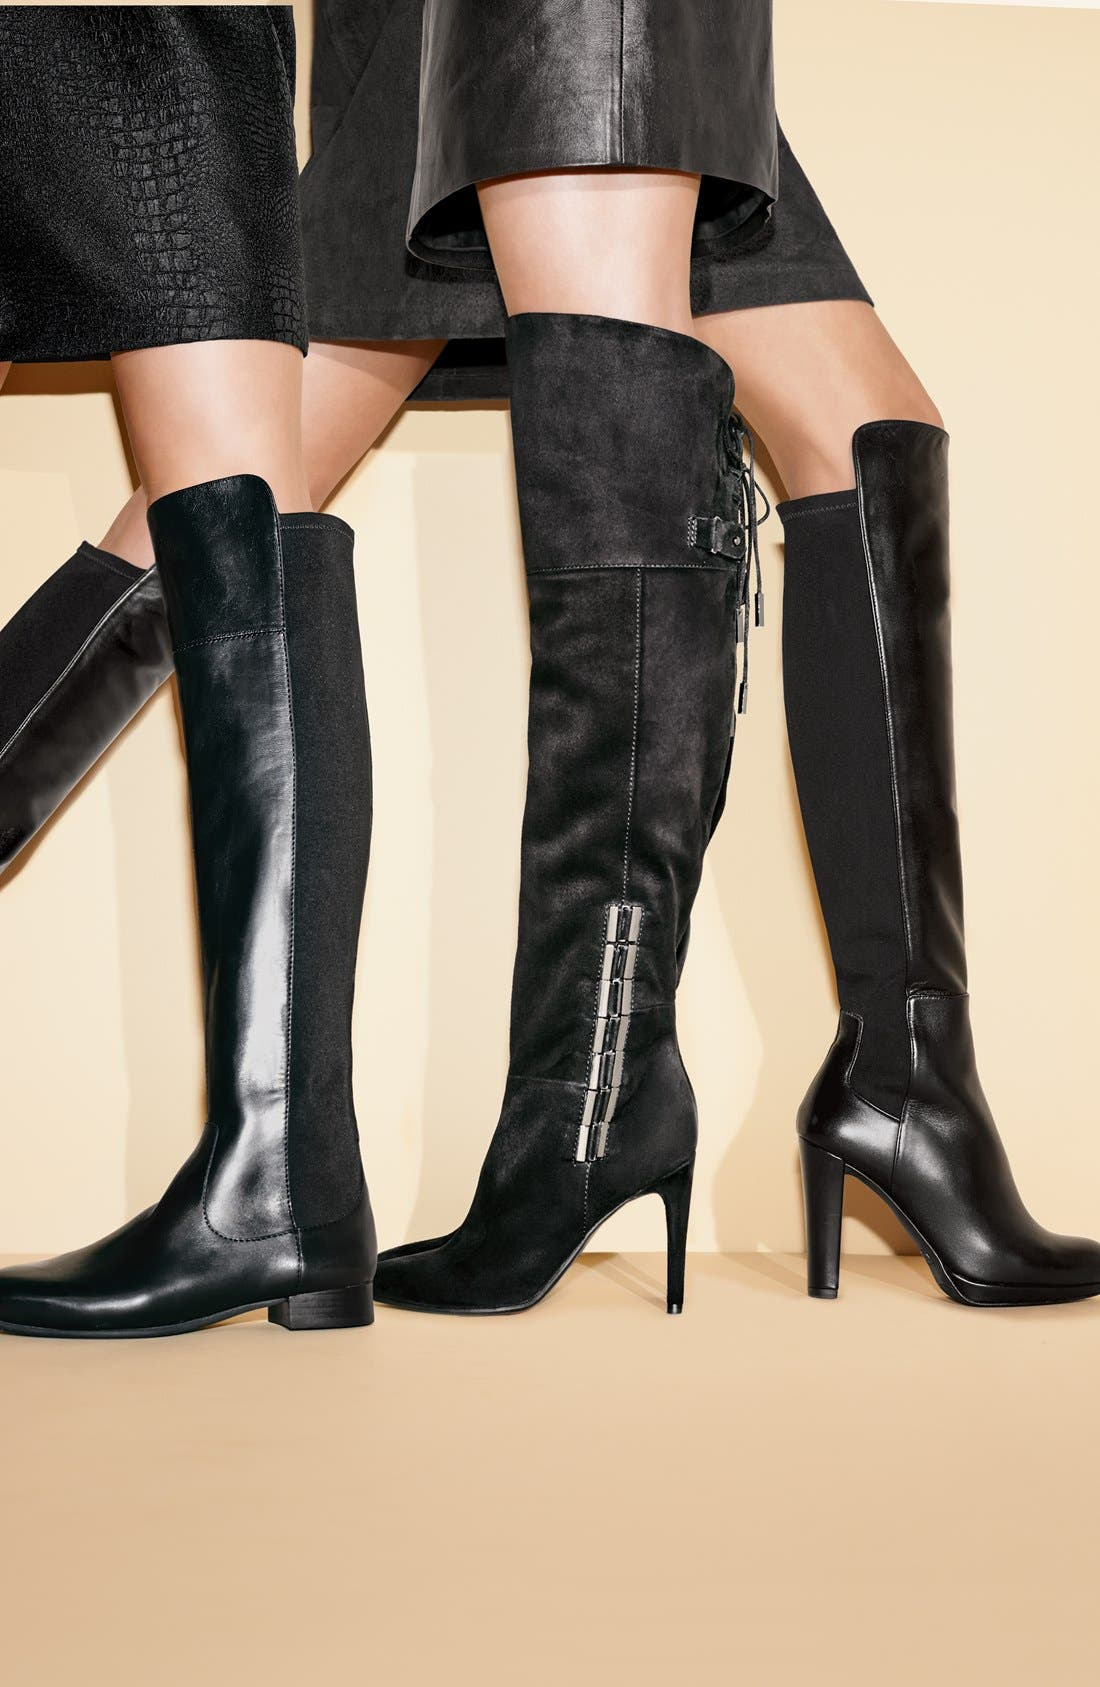 DOLCE VITA, 'Inara' Over the Knee Pointy Toe Suede Boot, Alternate thumbnail 7, color, 001